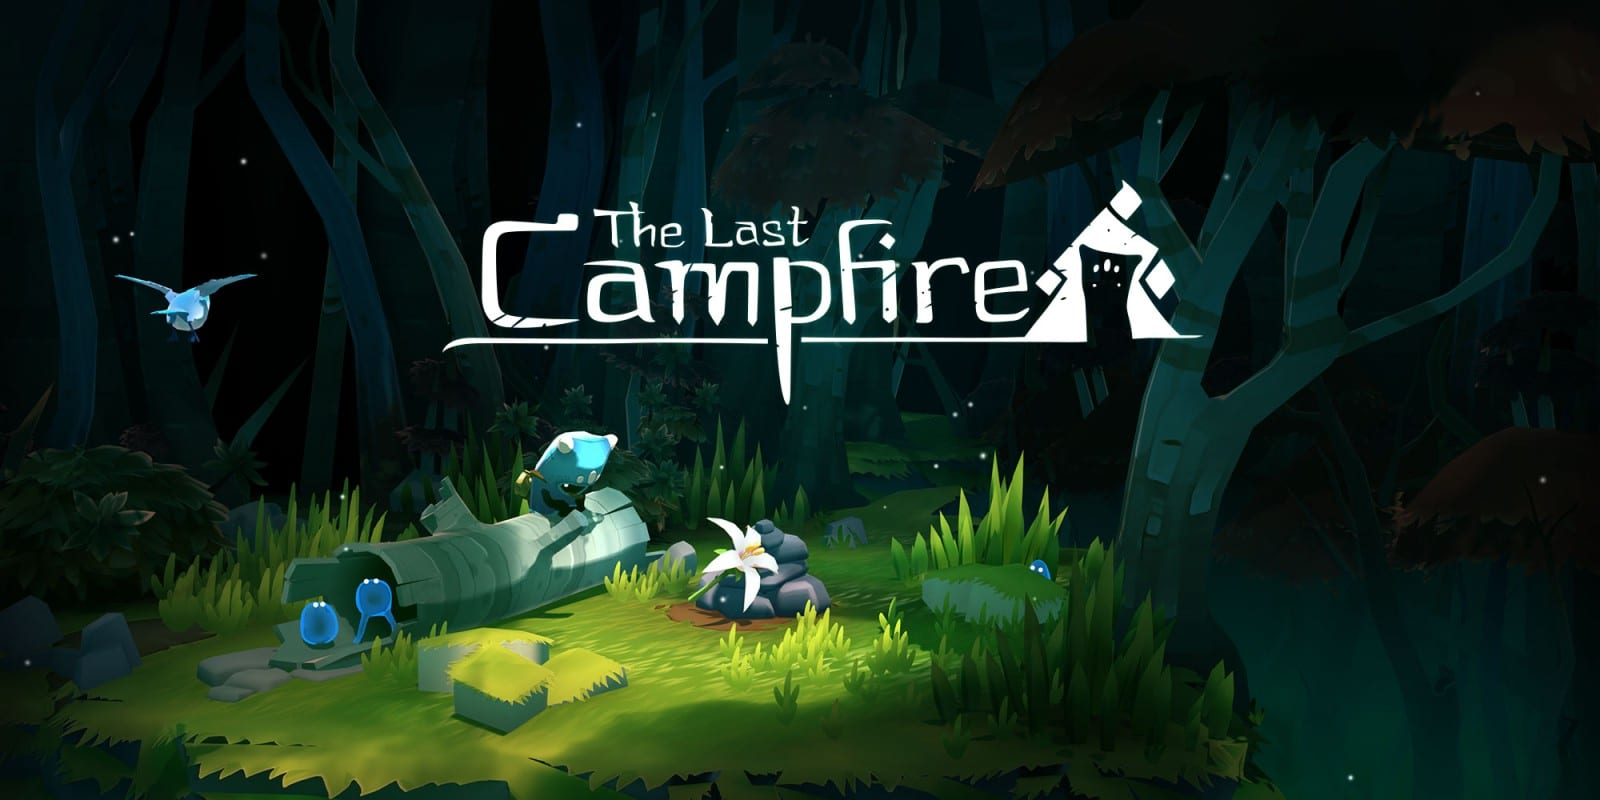 The Last Campfire, The Last Campfire Gameplay, The Last Campfire Trailer, Hello Games, No Man's Sky